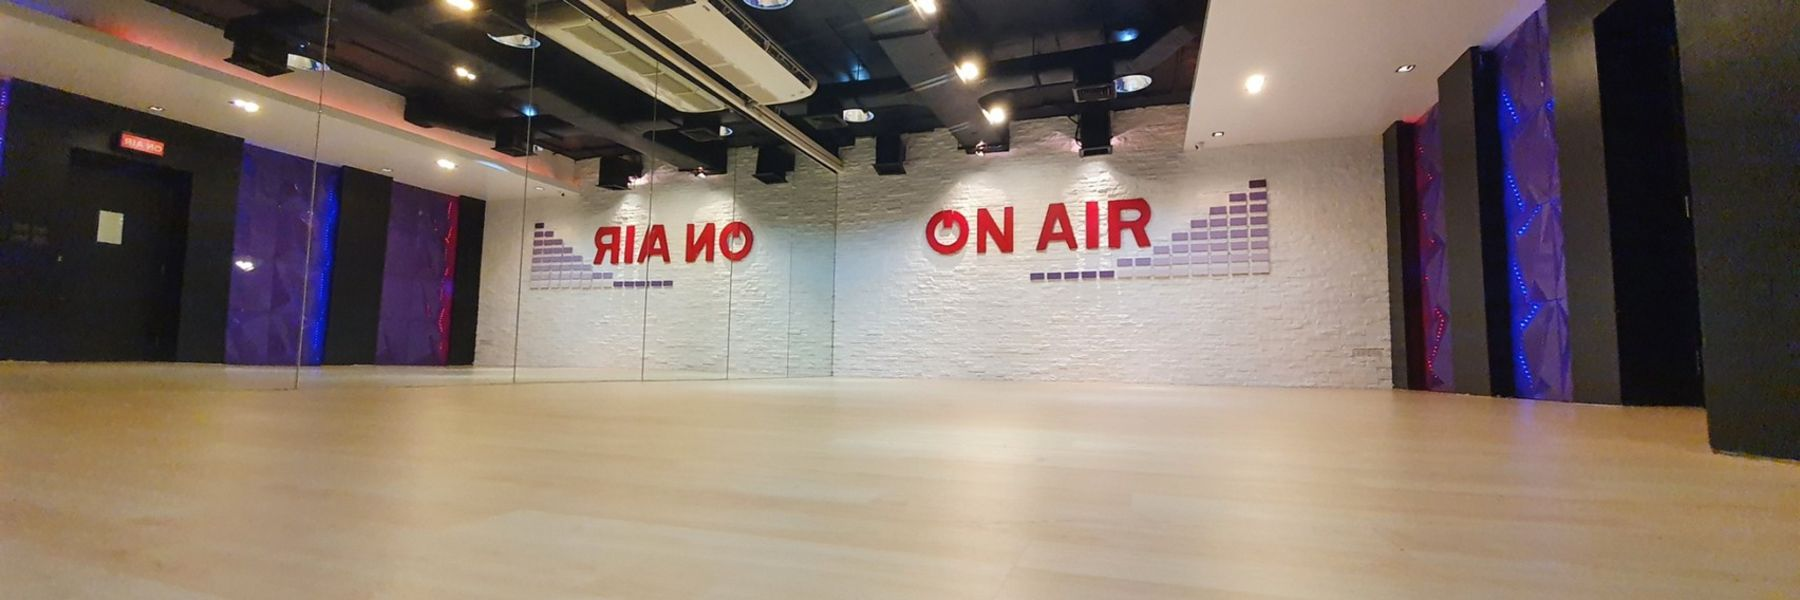 On Air Academy Thonglor image